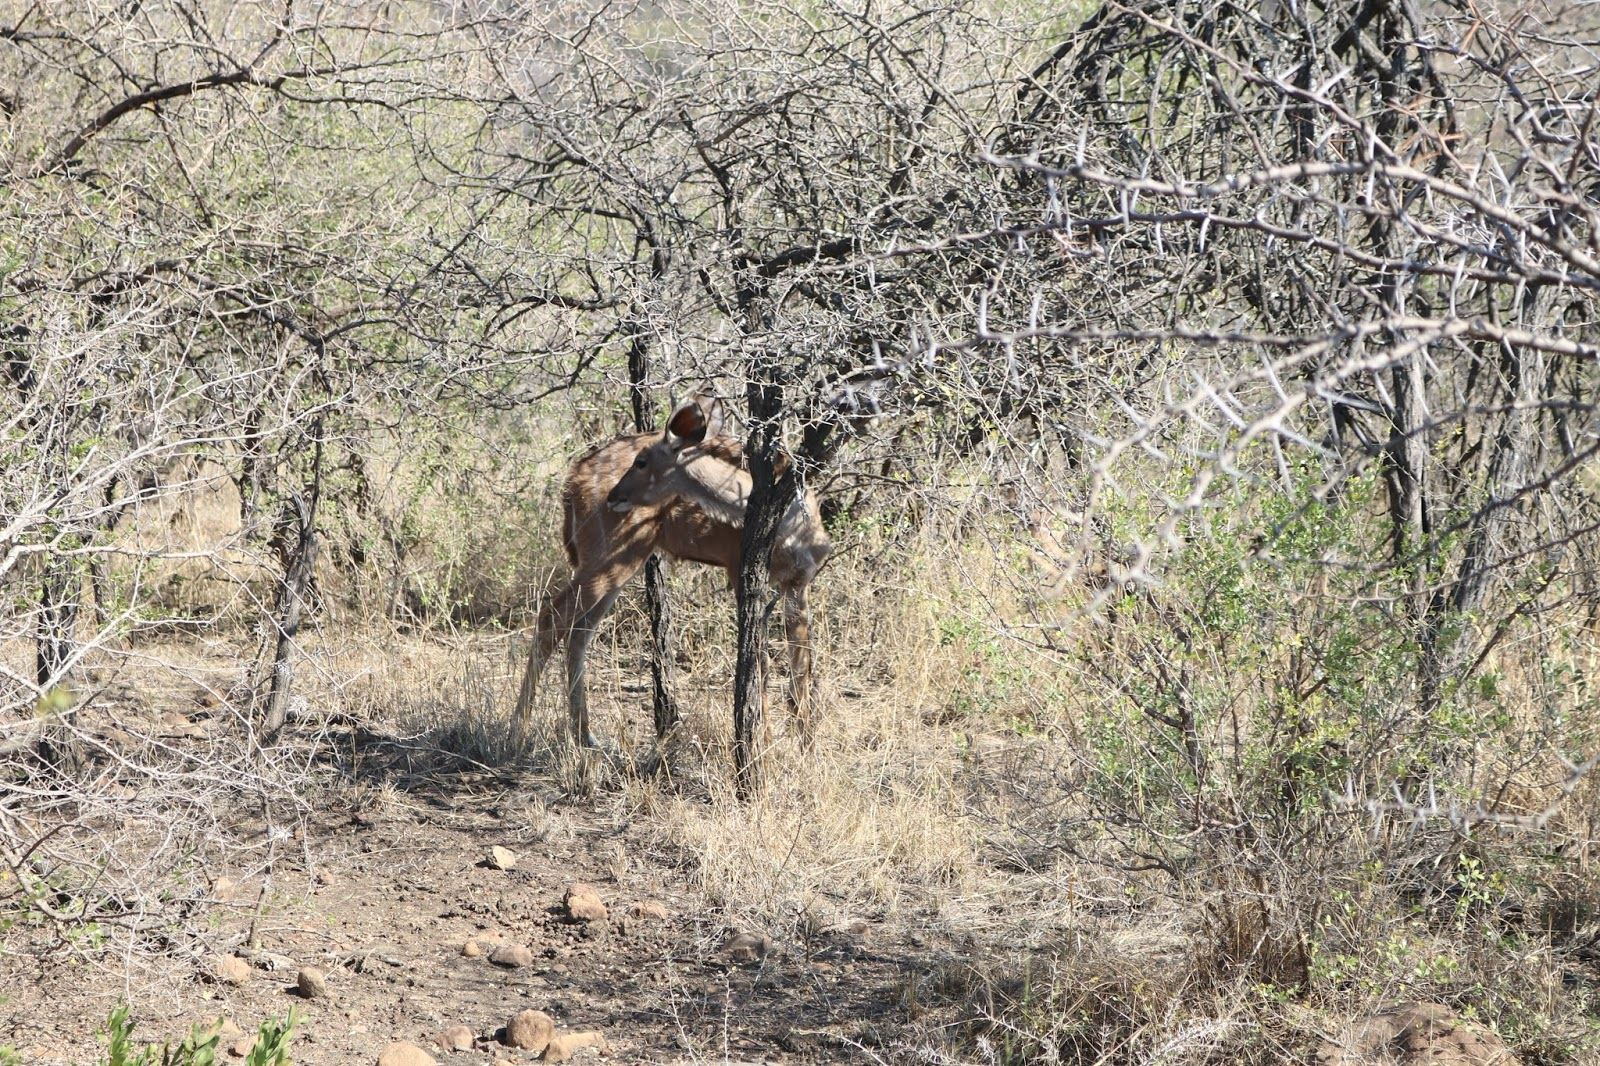 Deer in the Nambiti Game Reserve, South Africa